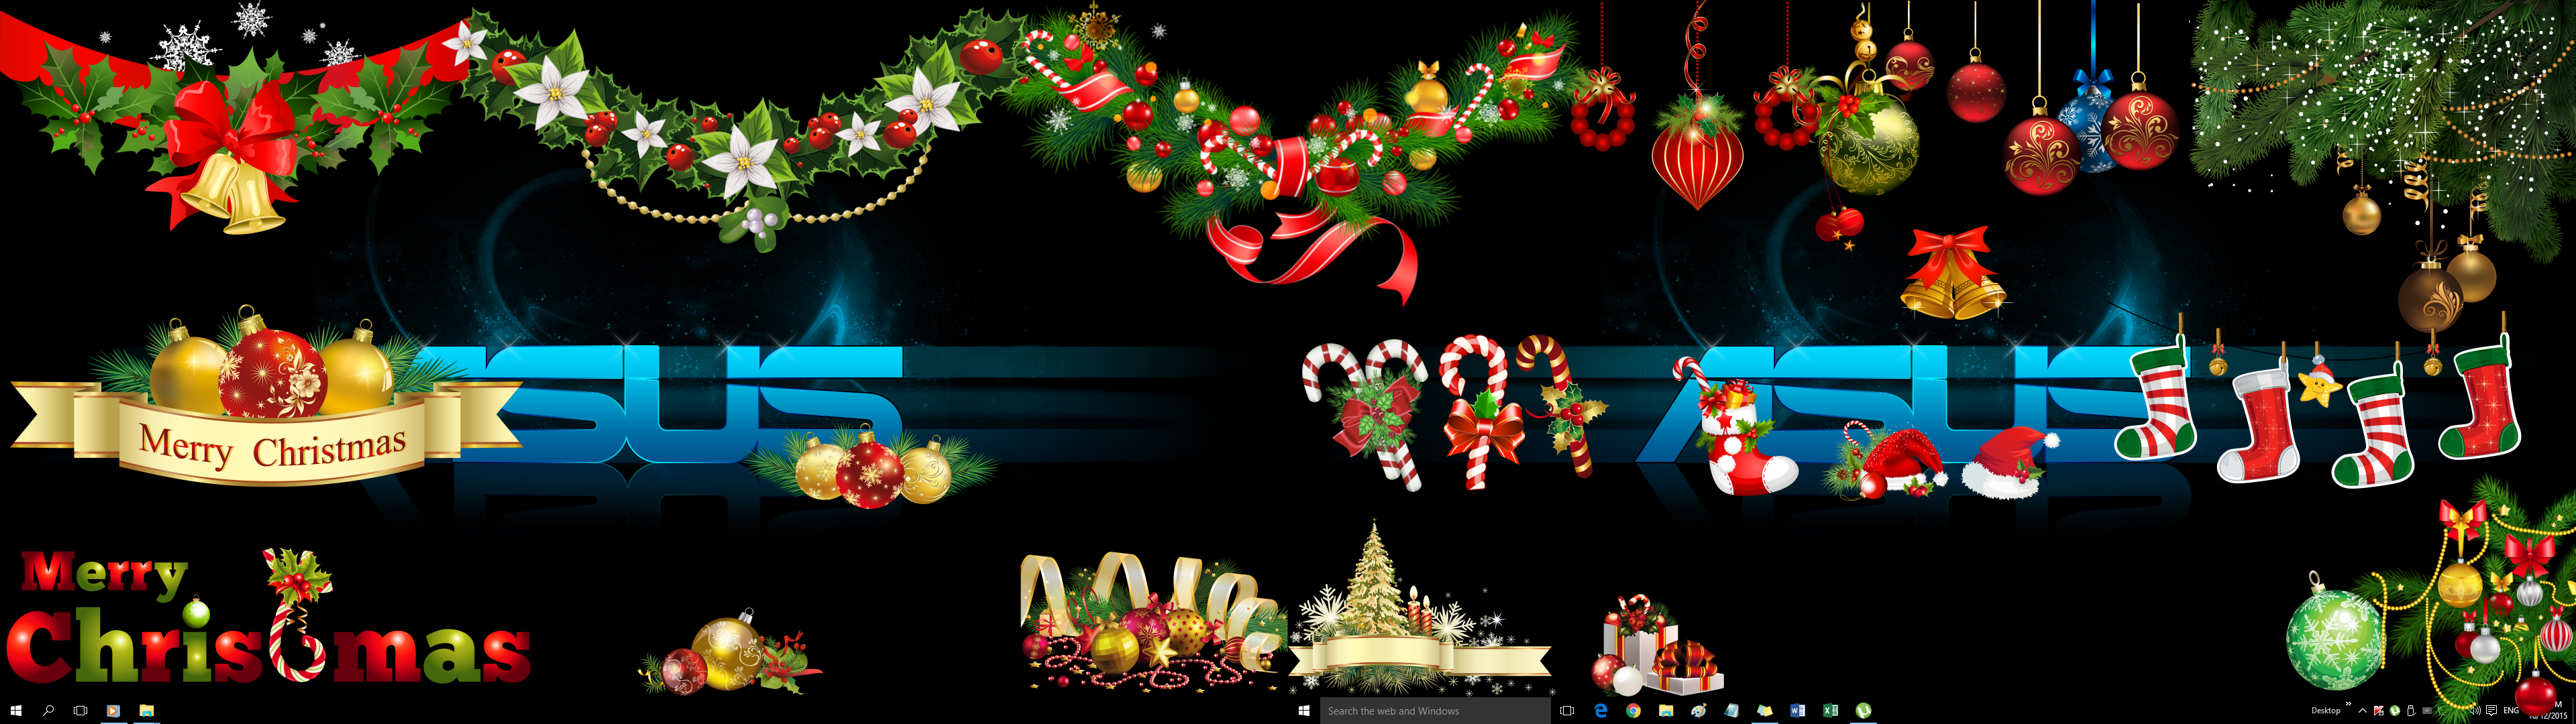 Christmas Decorations Pack By Ragingwasabi On Deviantart